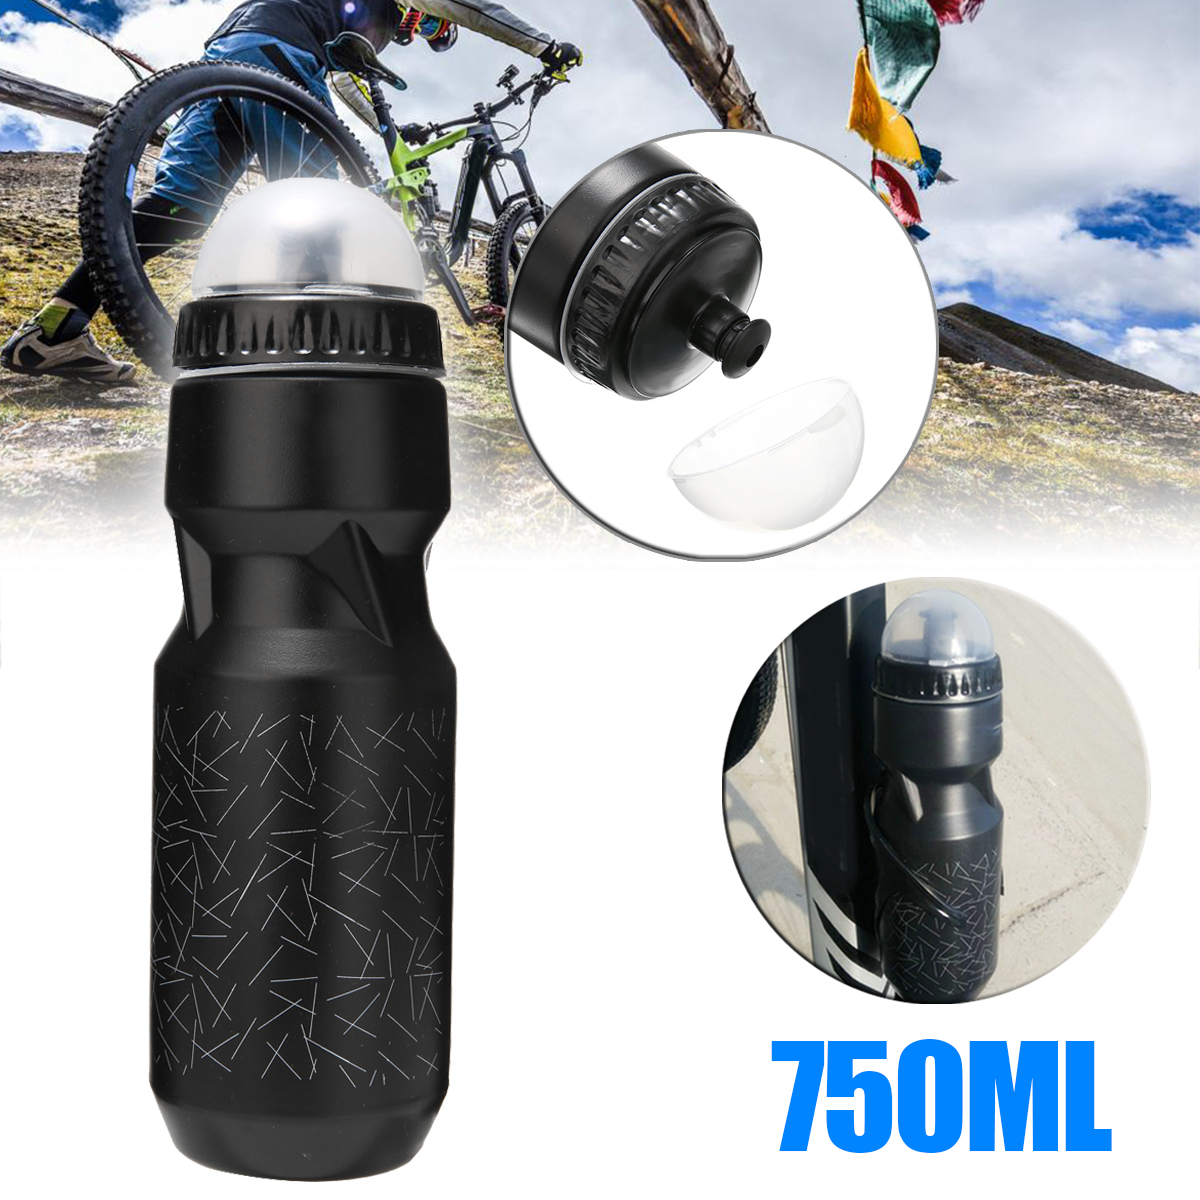 Outdoor 750ml Portable Bicycle Water Bottle Outdoor Sports Cycling Drinking Hiking Gym Water Bottle Cup For Camping Travel